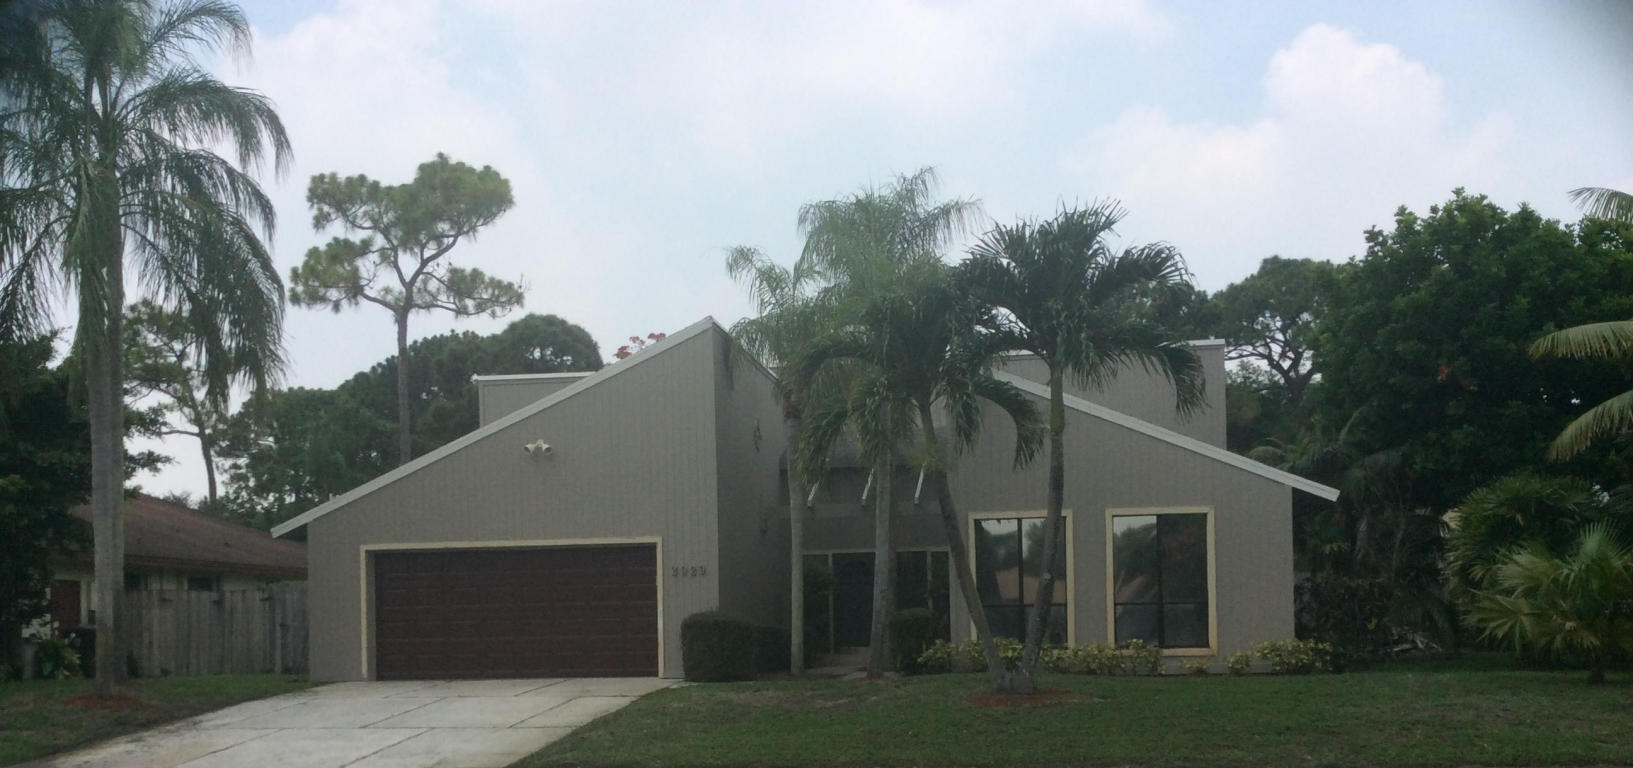 Rental Homes for Rent, ListingId:30216633, location: 2929 NW 24th Way Boca Raton 33431